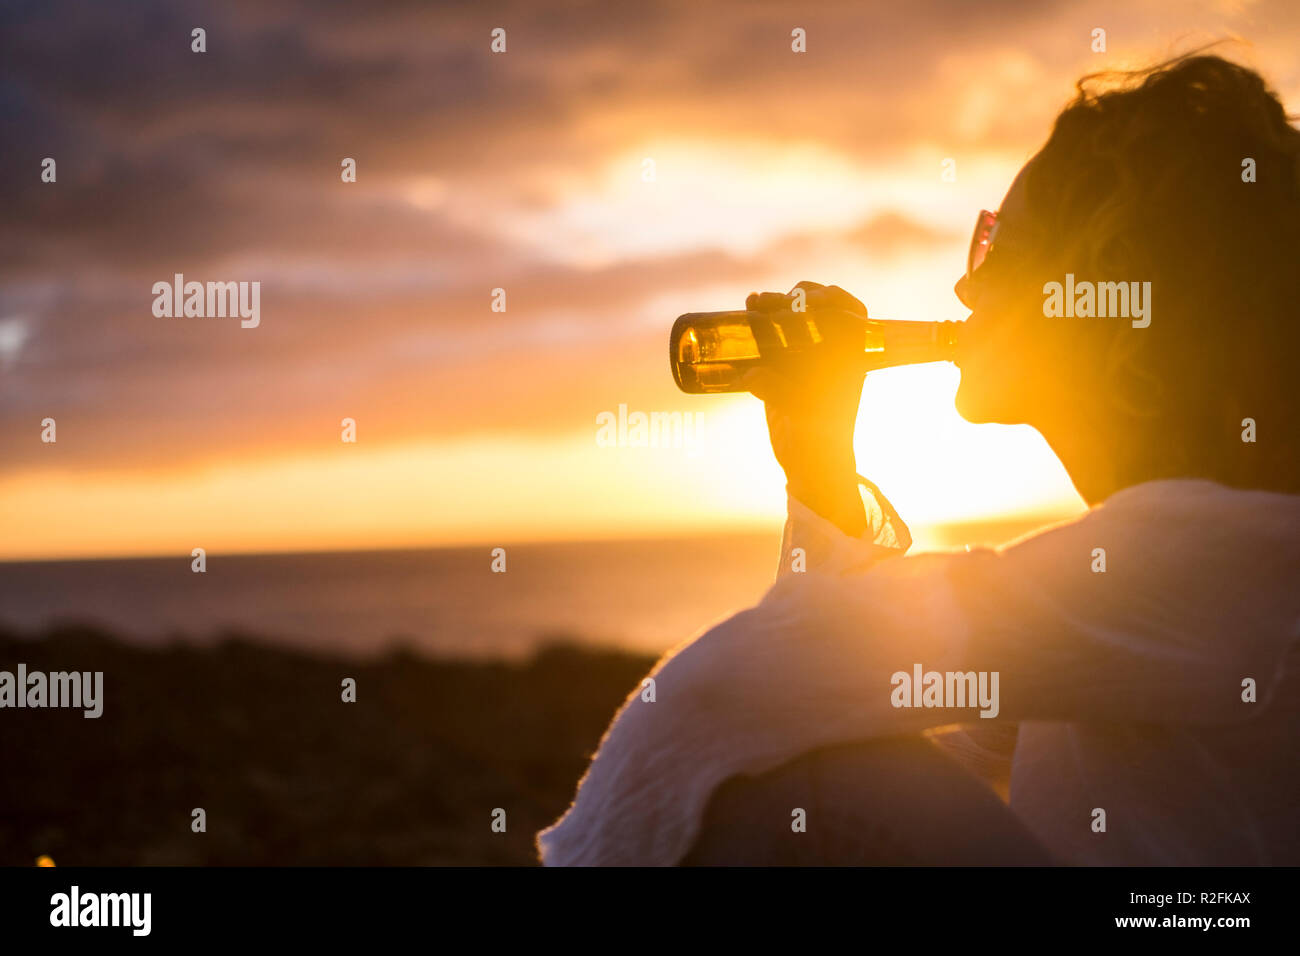 beautiful young woman middle age drink a beer with satisfaction during holiday or celebration for a success at work or in life. day end with an award made by amazing sun and colors. - Stock Image